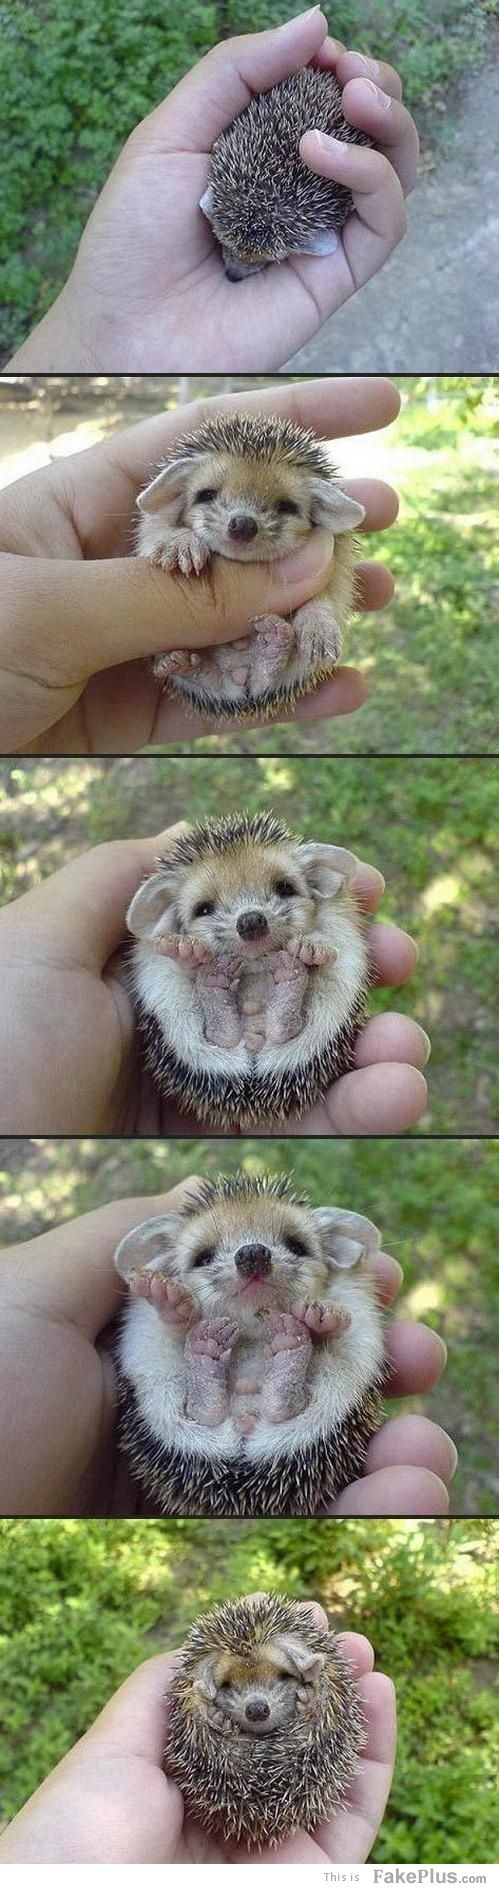 baby hedgehog I want 2 of them